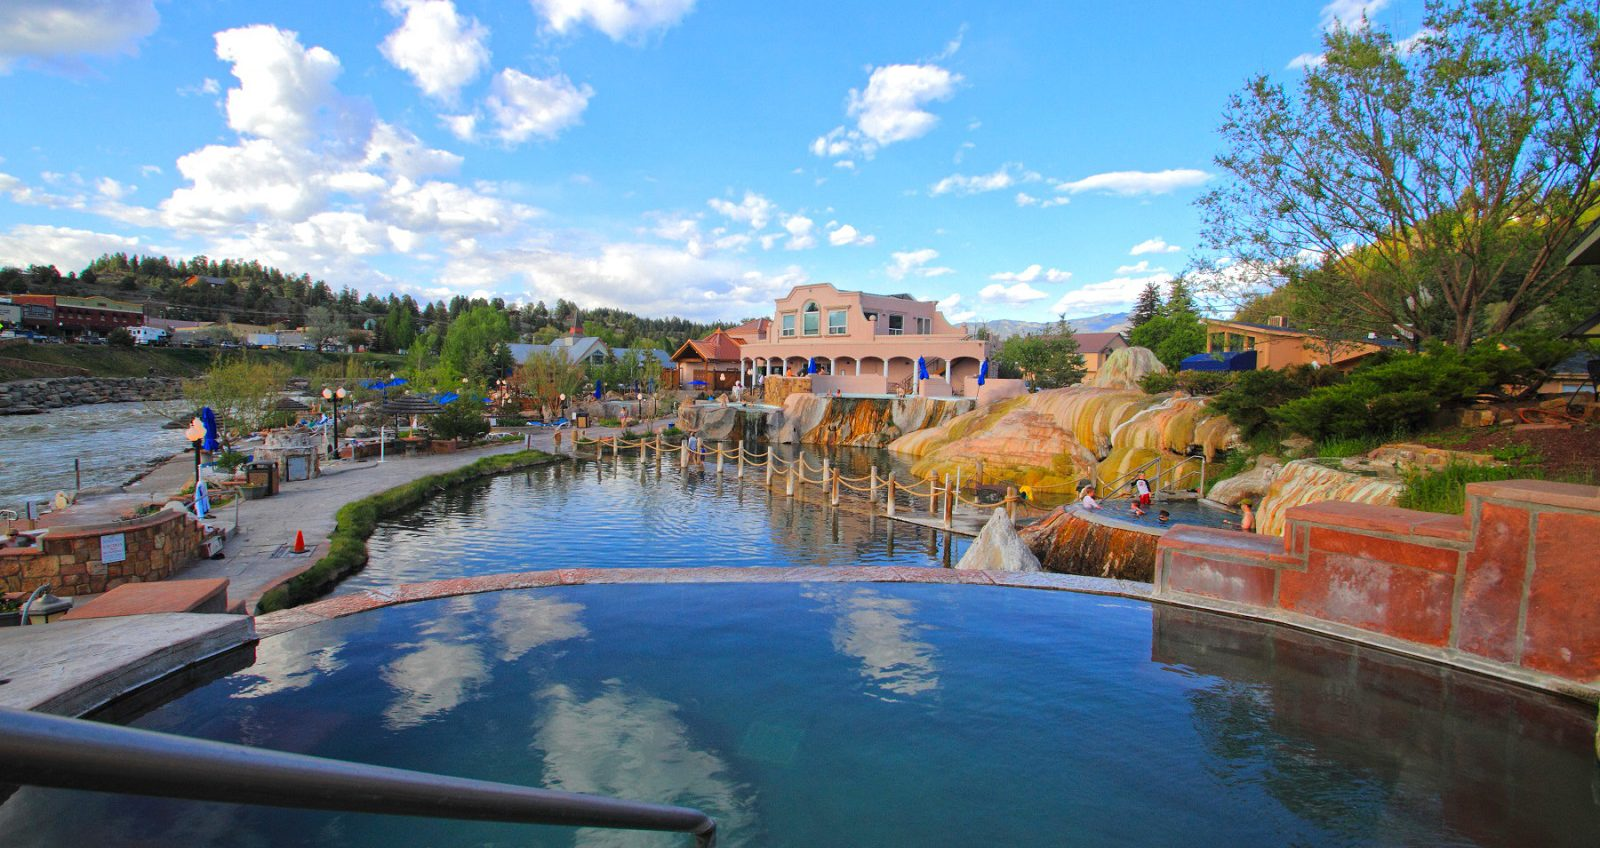 Pagosa Springs is known for its rejuvenating hot springs